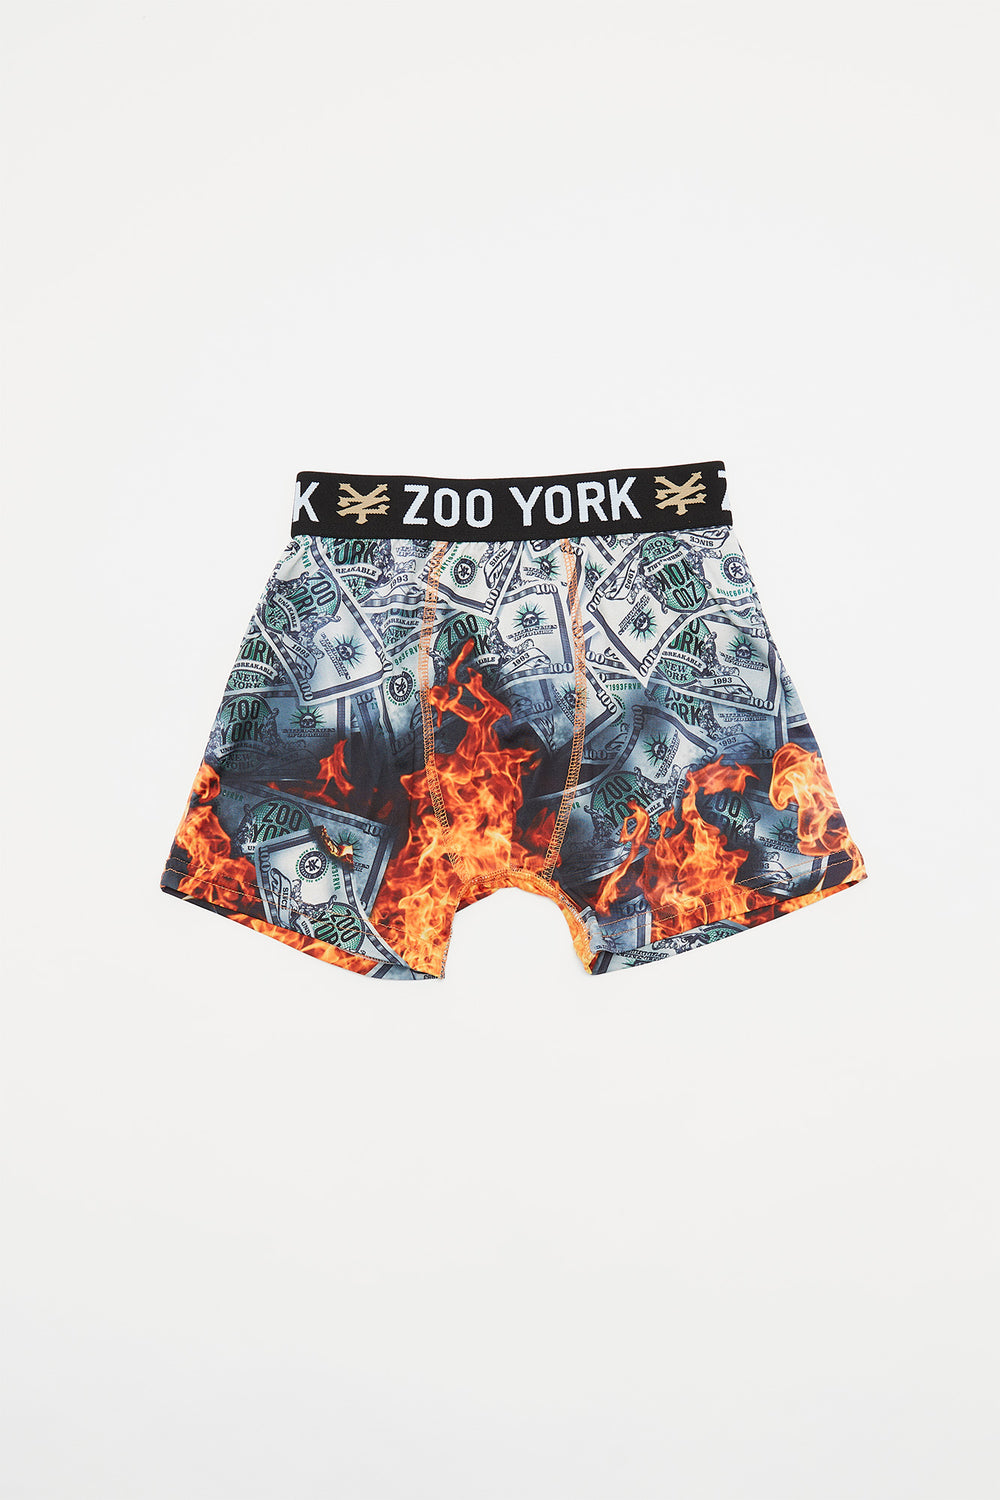 Zoo York Boys Money Flame Boxer Brief Green